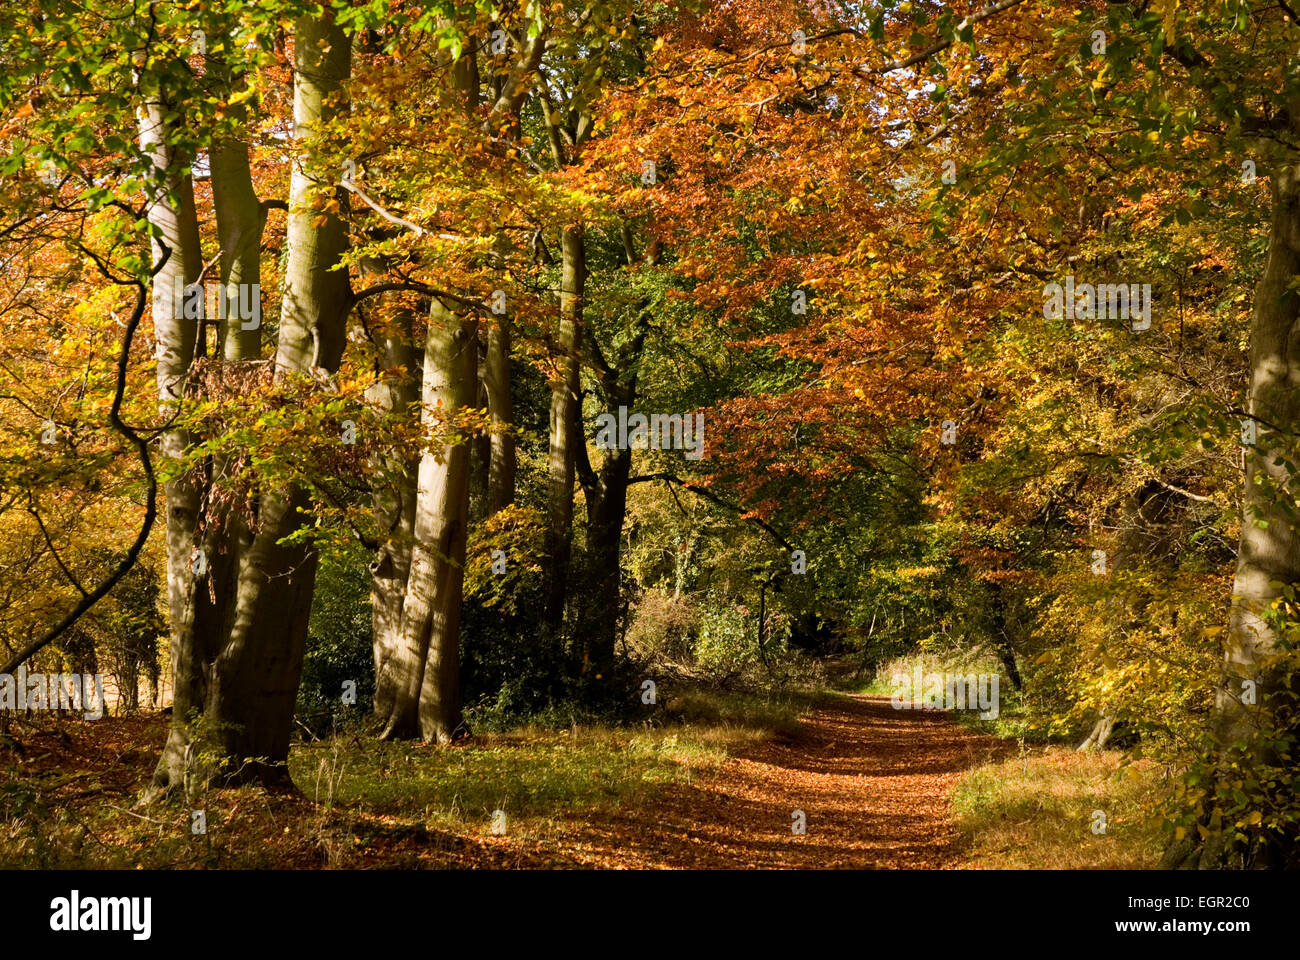 Bucks - Chiltern Hills - beech woods in autumn - leaf covered pathway leading beneath the russet and gold leaves - Stock Image